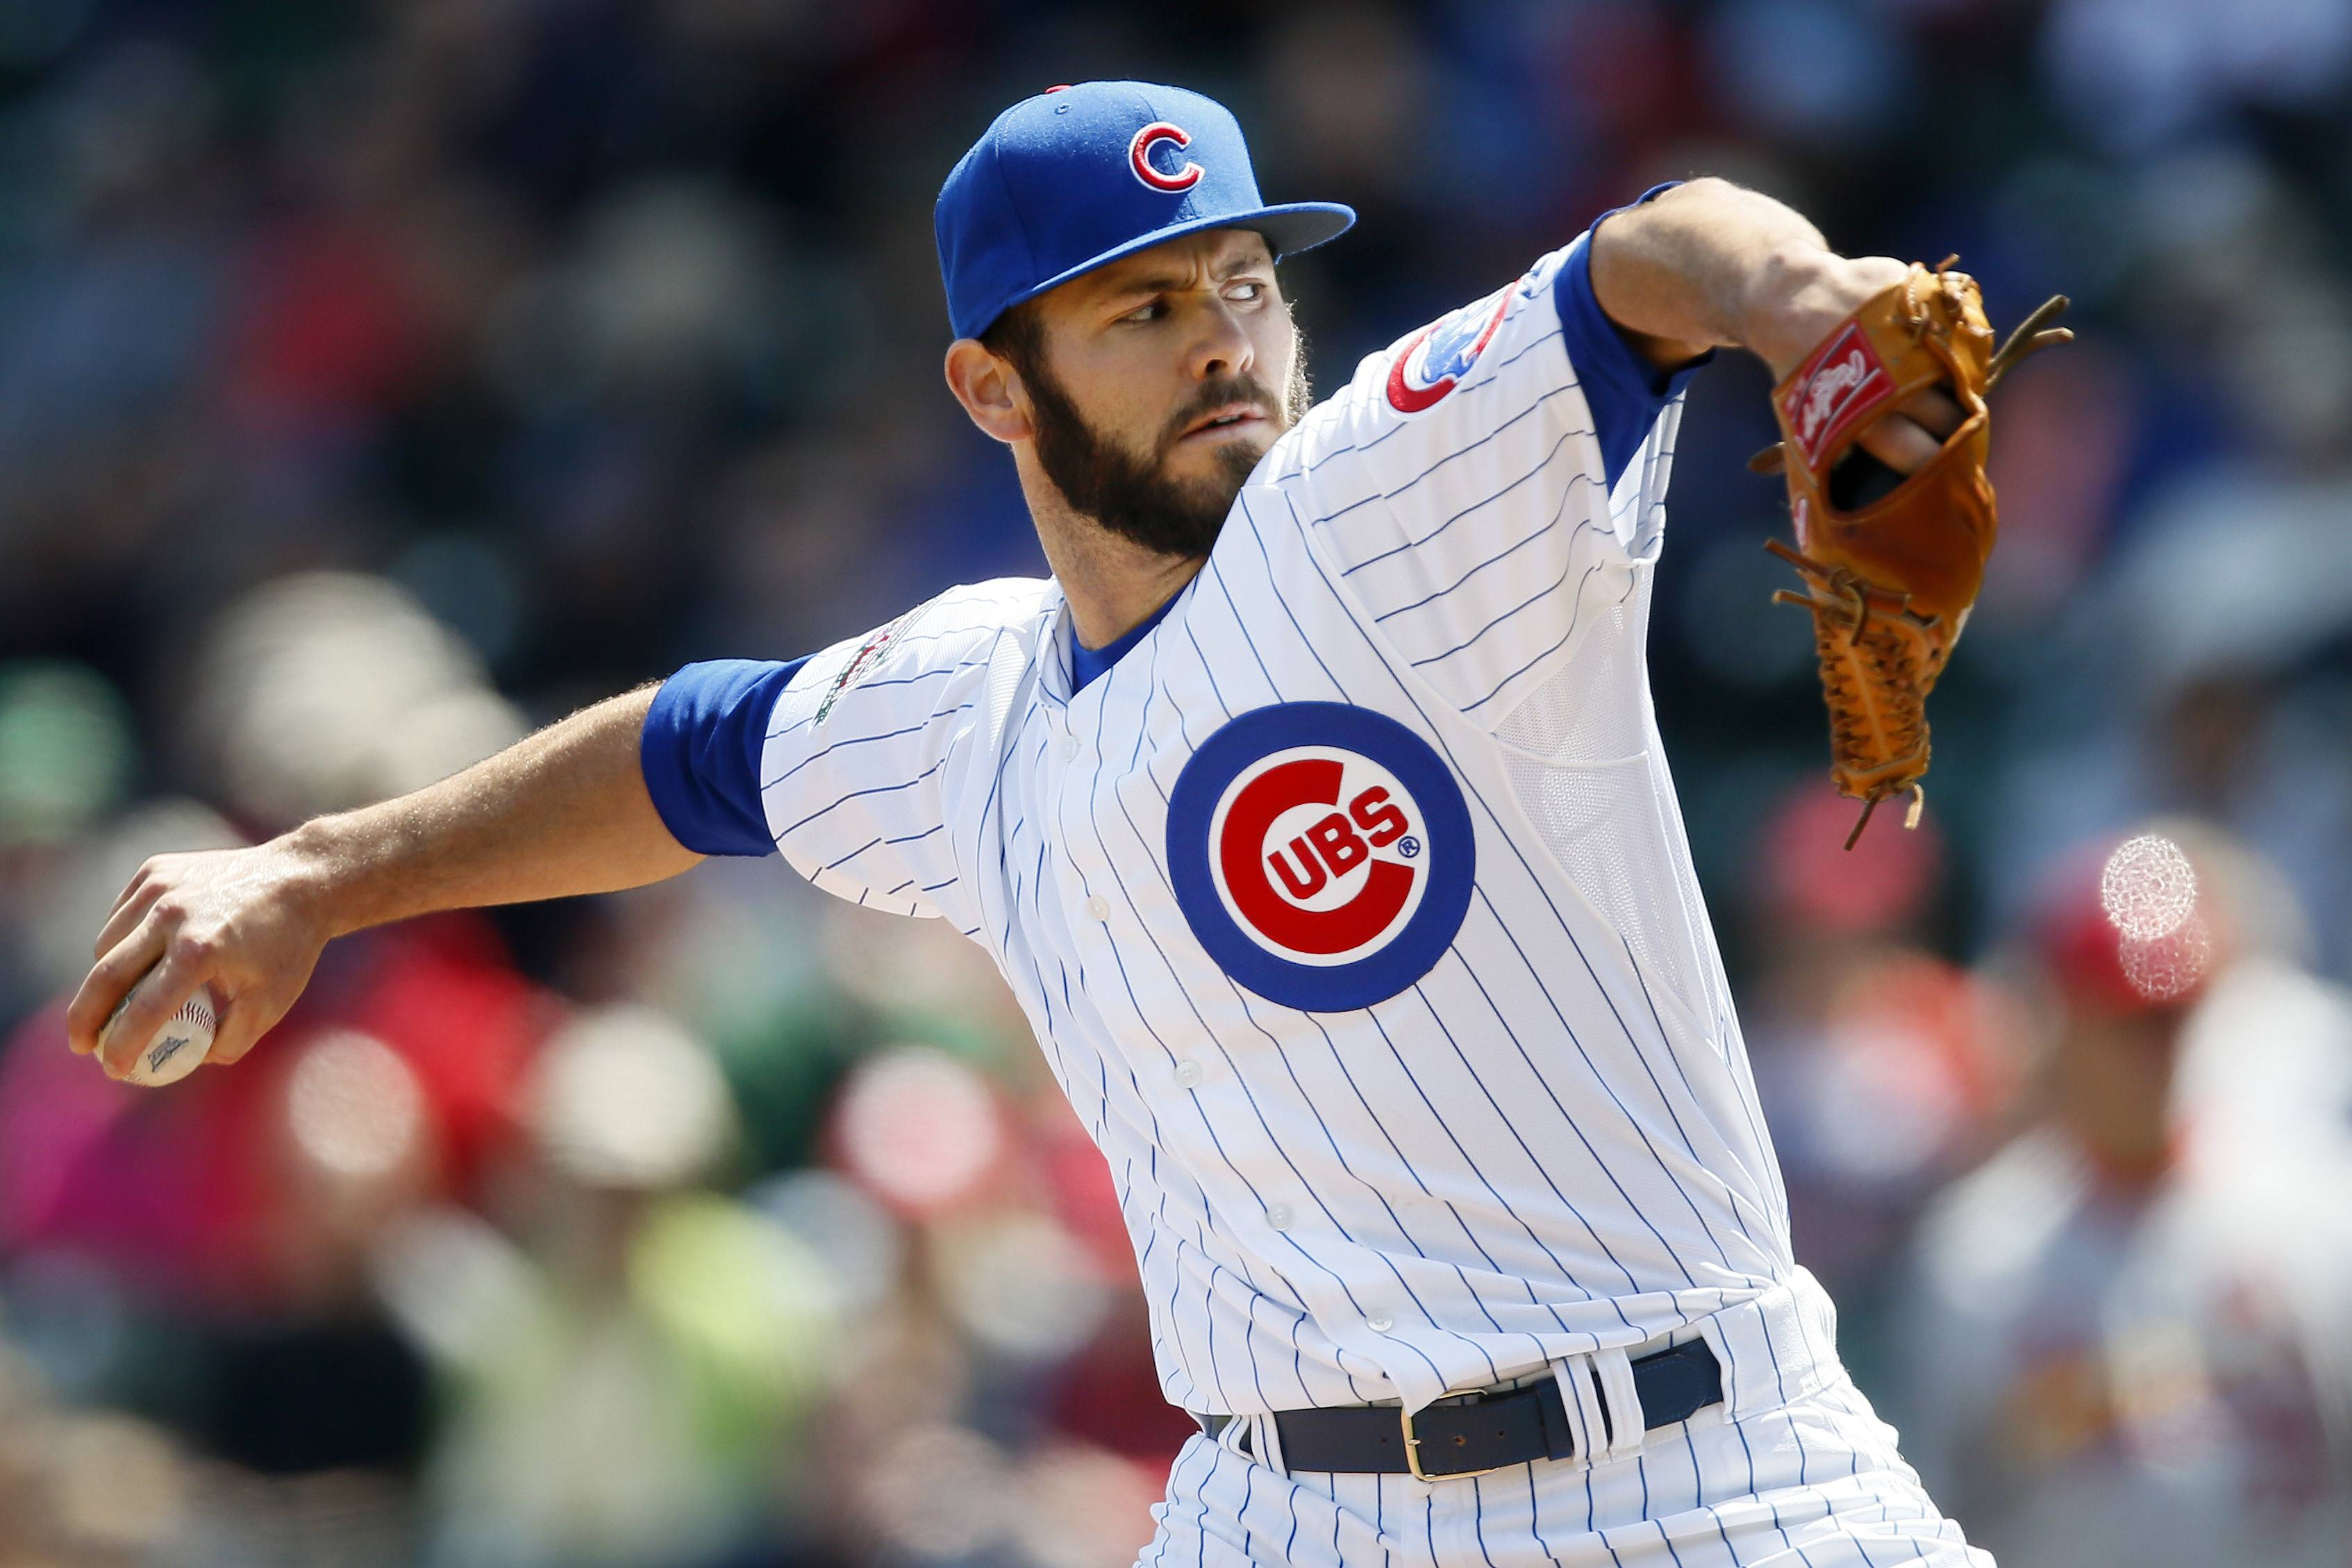 Cubs starting pitcher Jake Arrieta delivers against the St. Louis Cardinals during the first inning of a baseball game on Saturday, May 3, 2014, in Chicago.